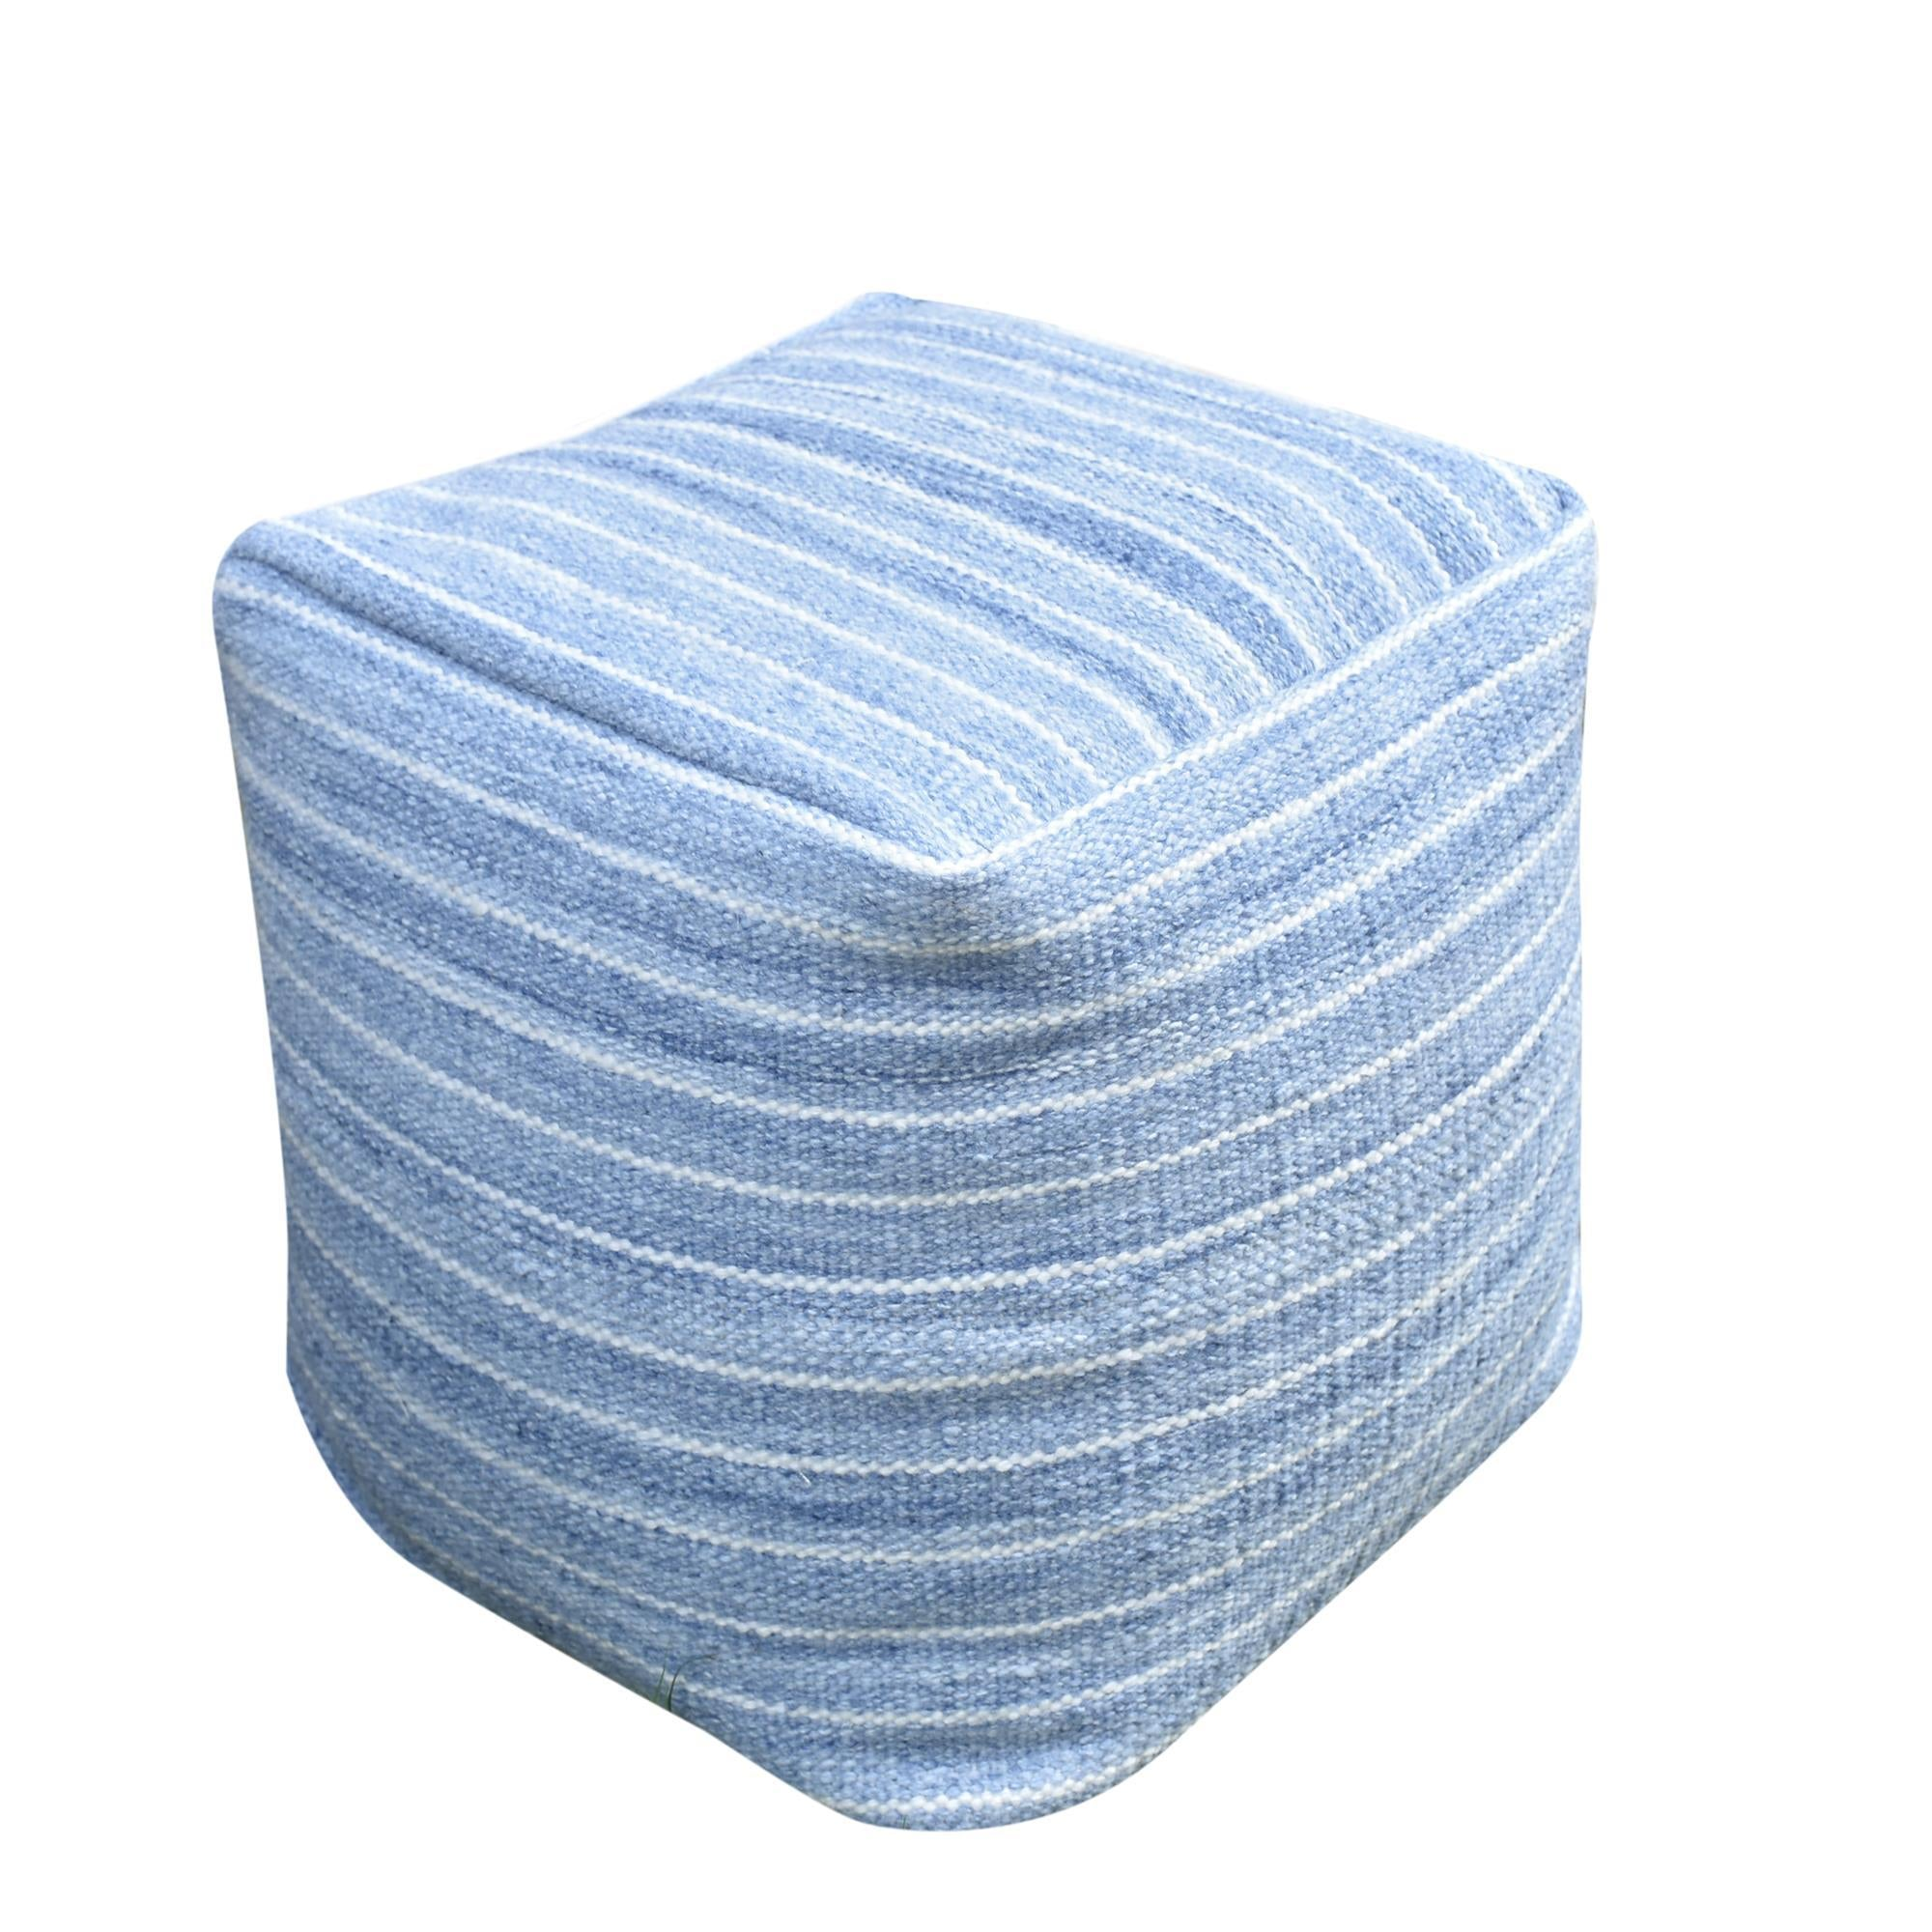 Orlando Recycled Blue Pouf Stools & Poufs